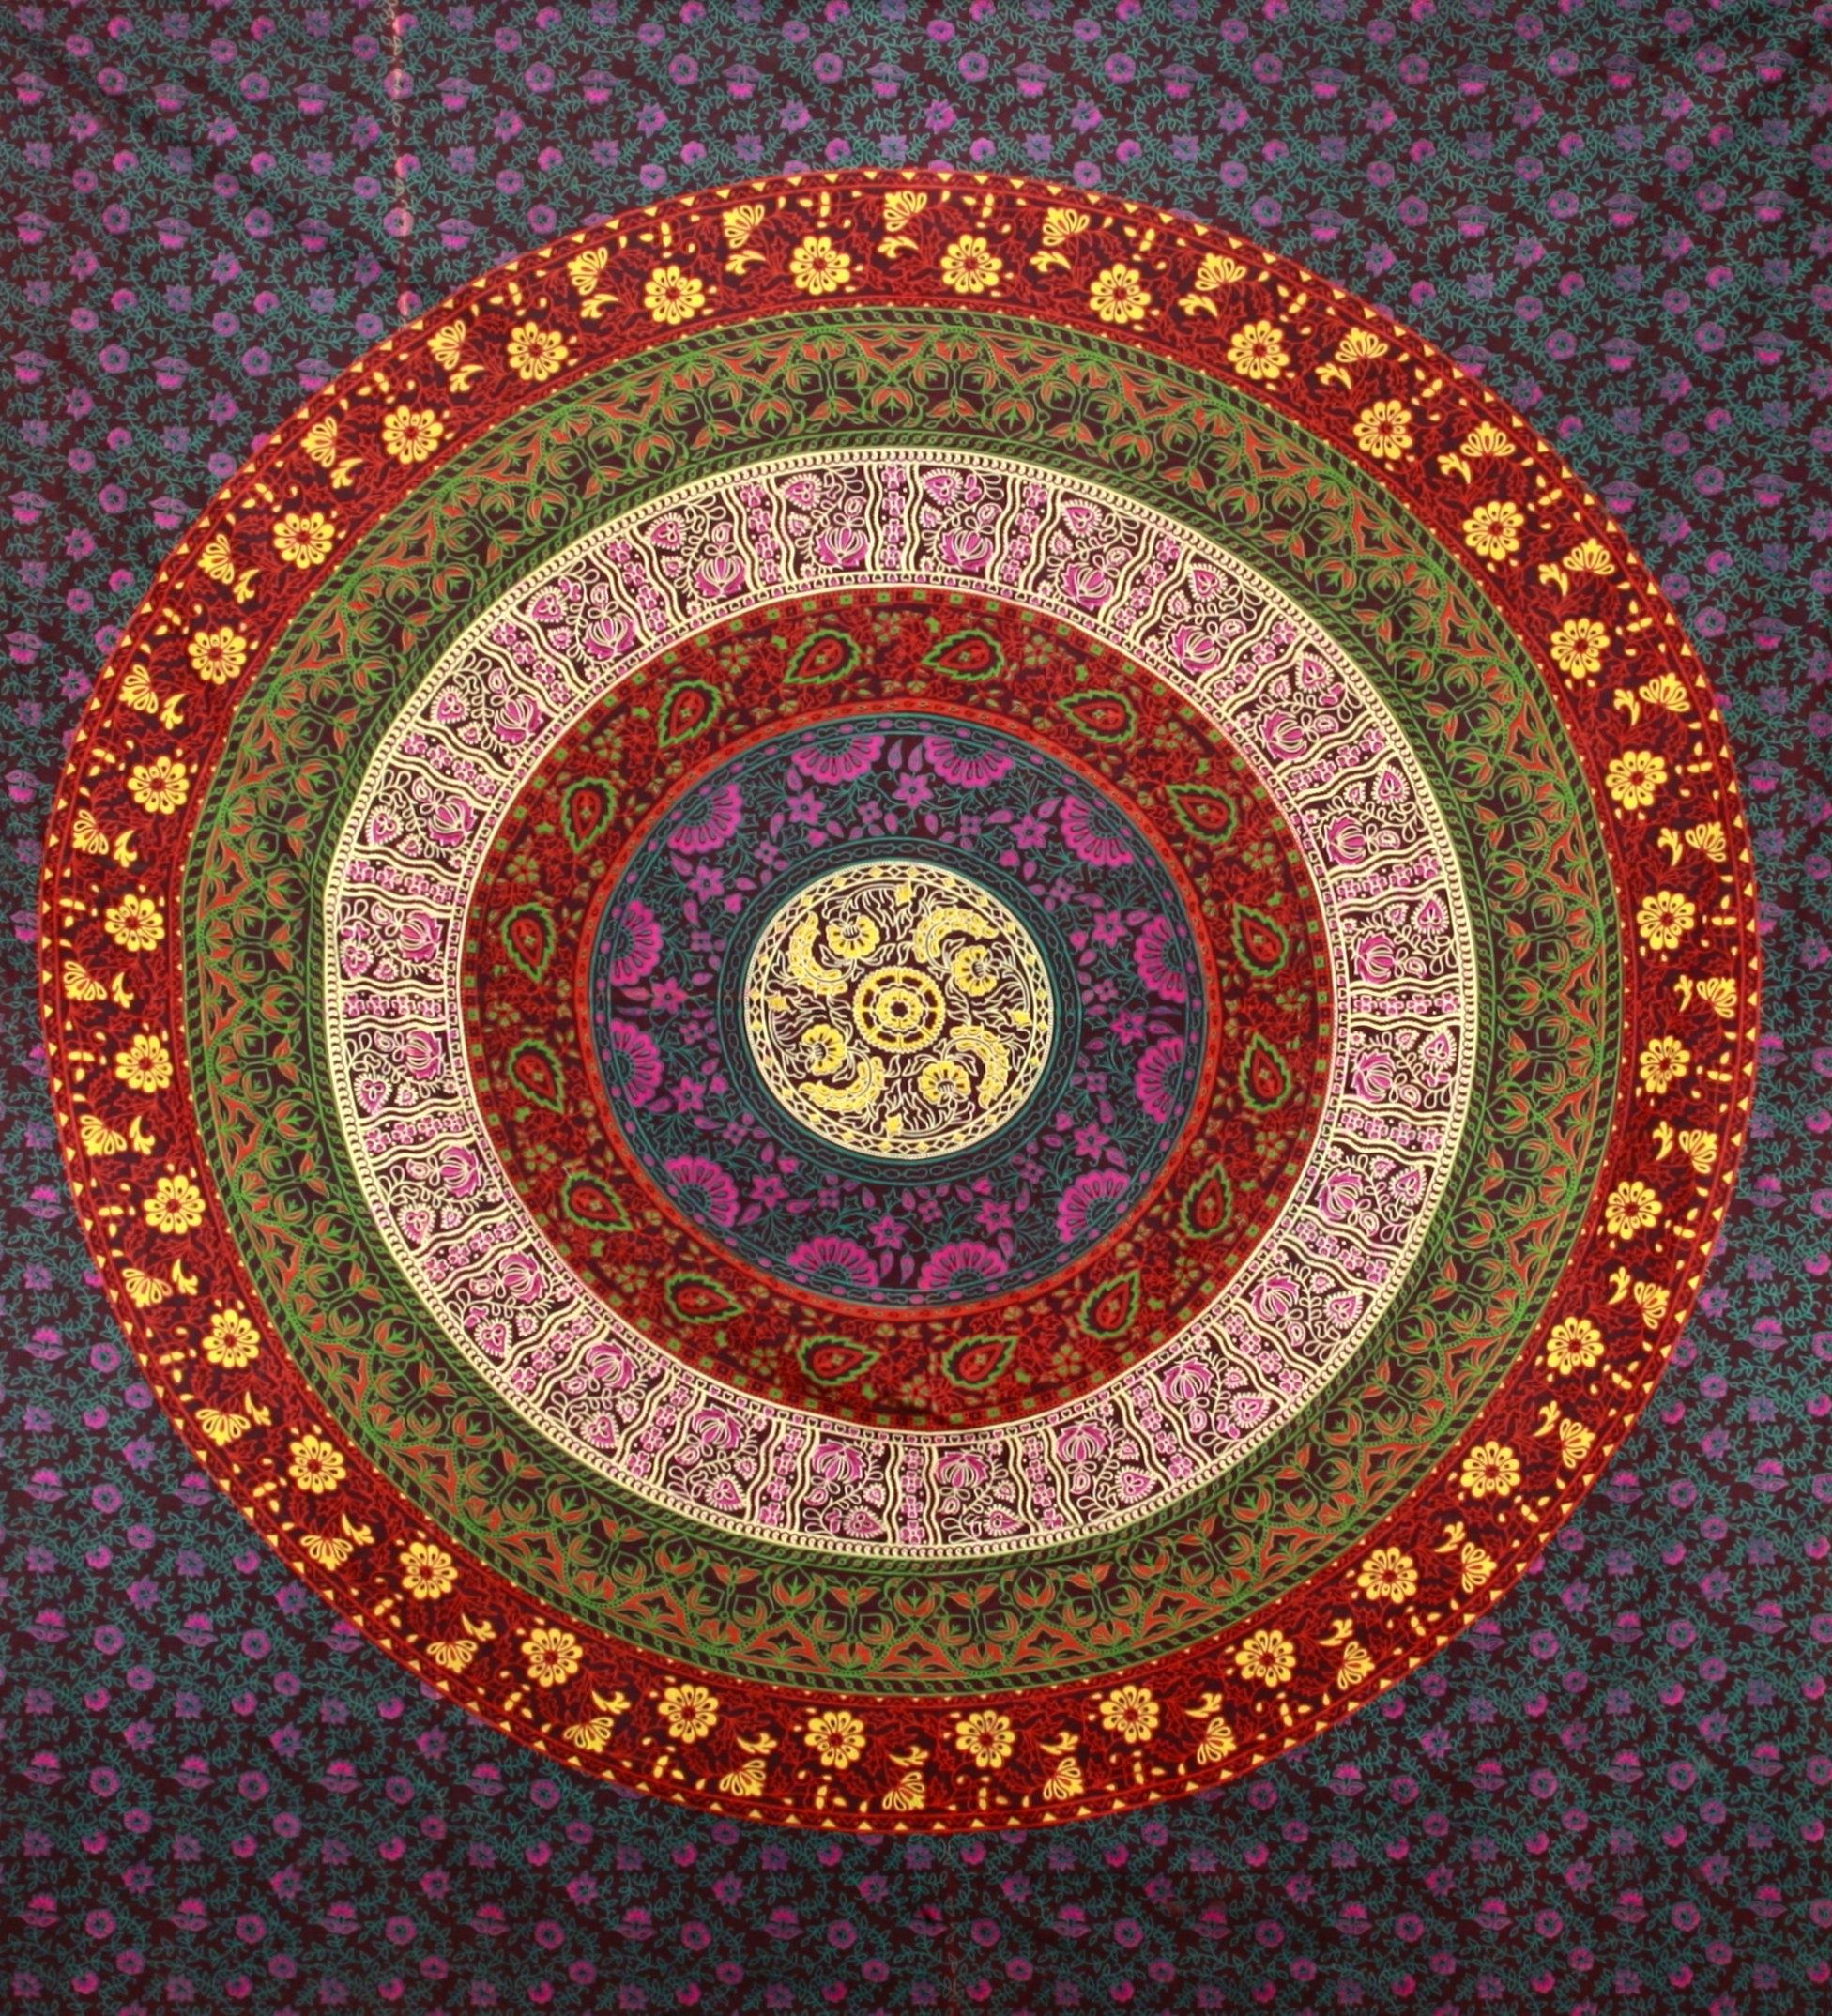 Sunshine Joy Circle Of Flowers Barhmeri Indian Tapestry – Beach Inside Most Up To Date Indian Fabric Art Wall Hangings (View 15 of 15)